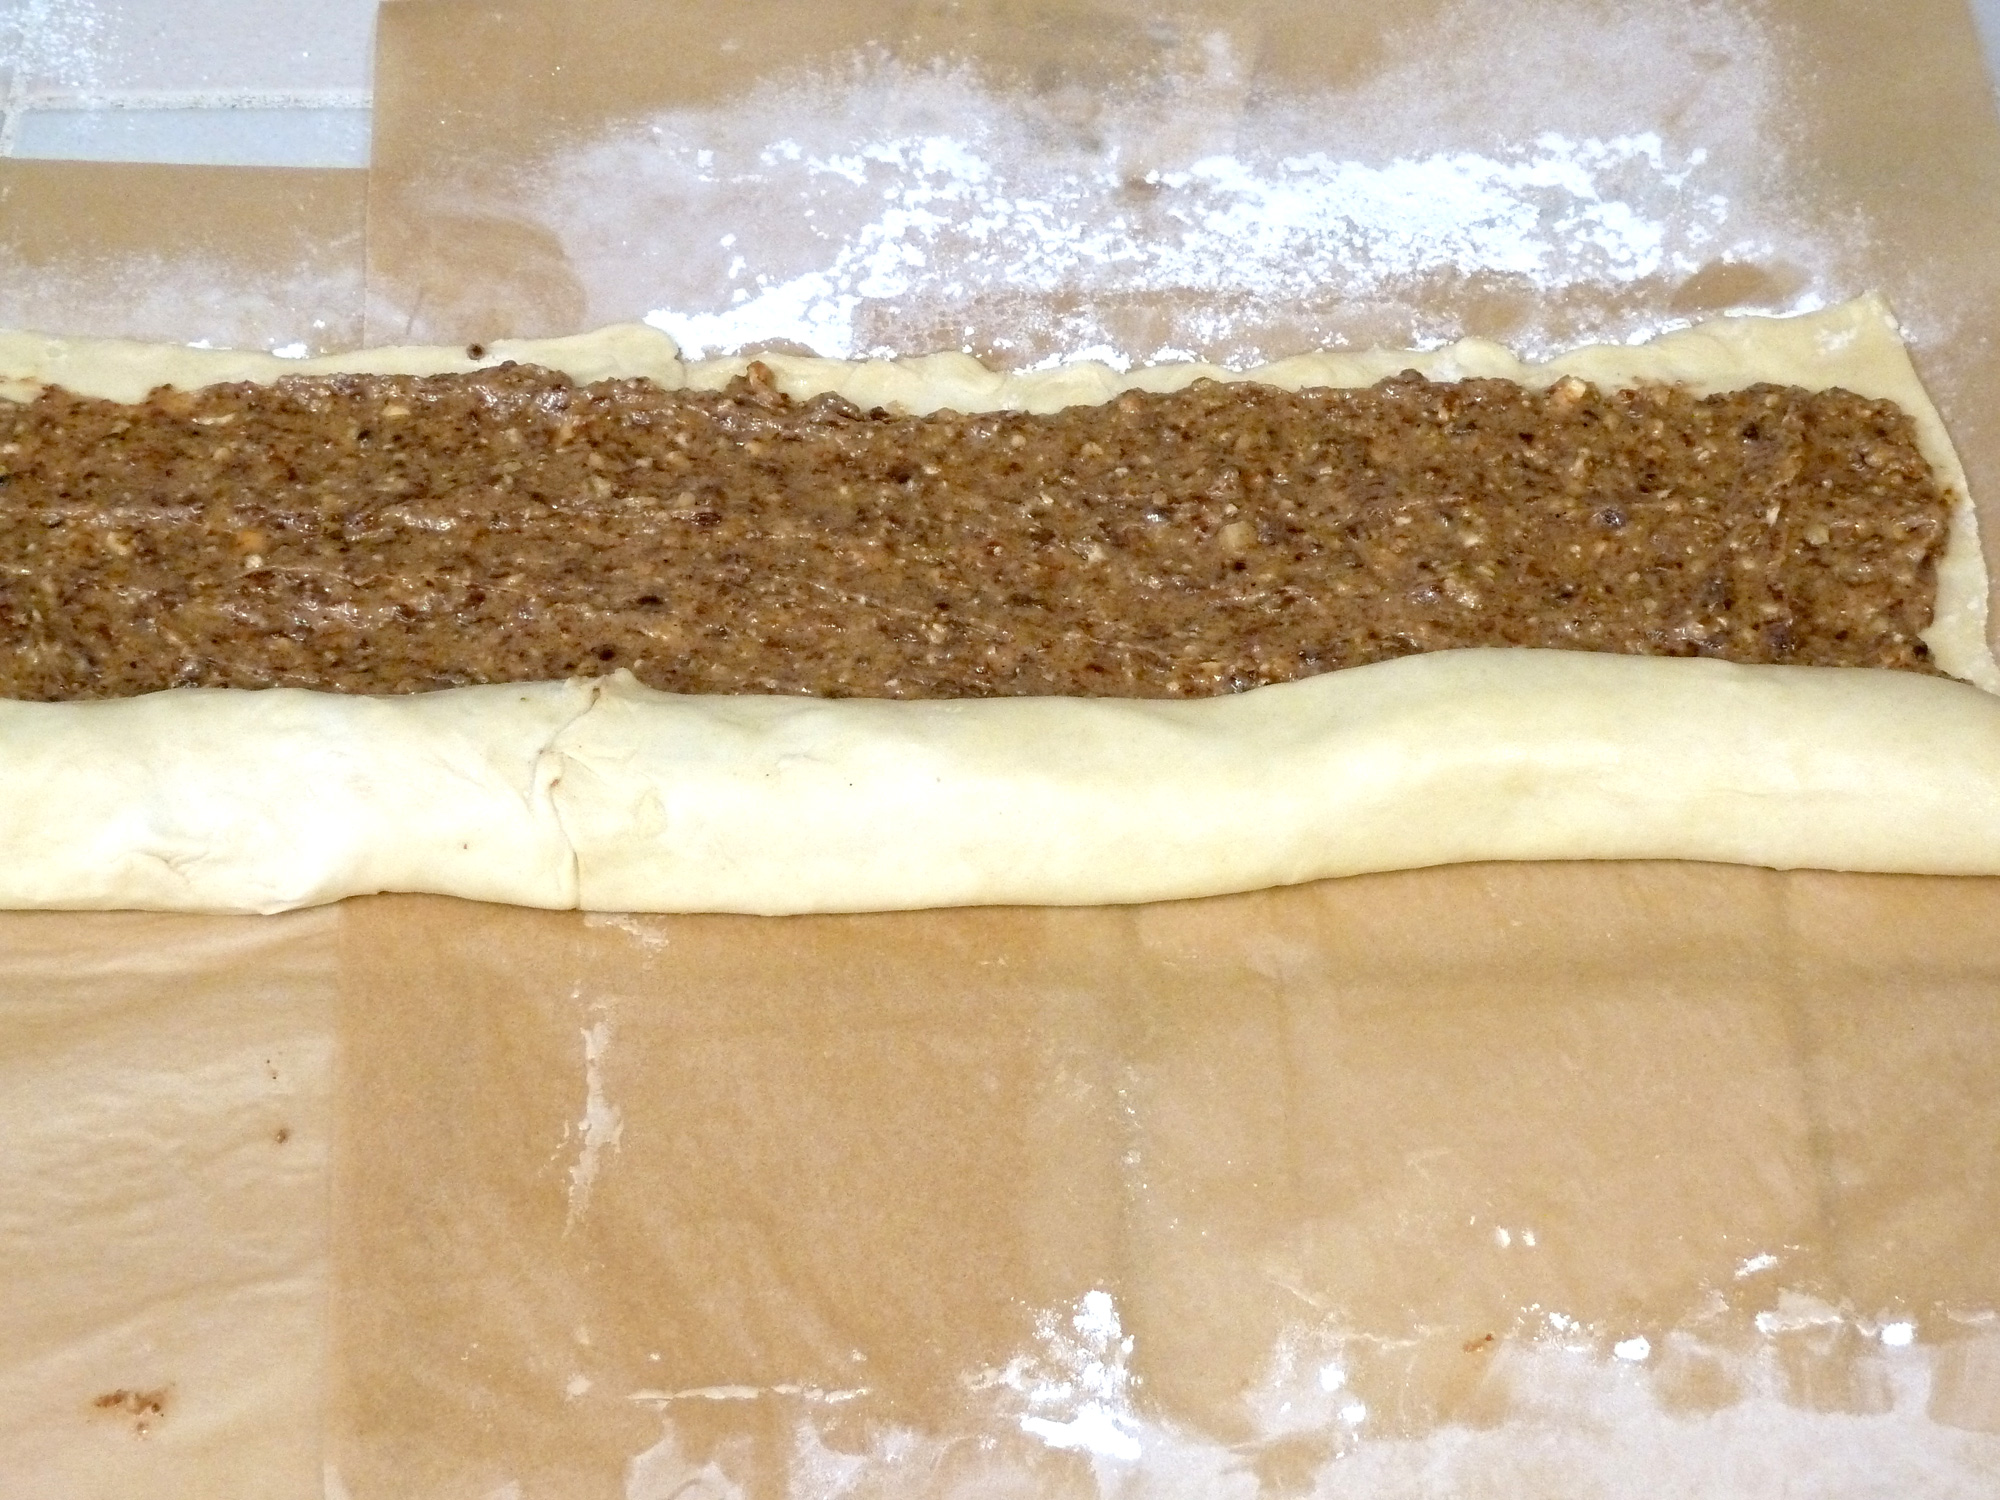 Roll the cinnamon raisin swirl puff pastry away from you into a long log.